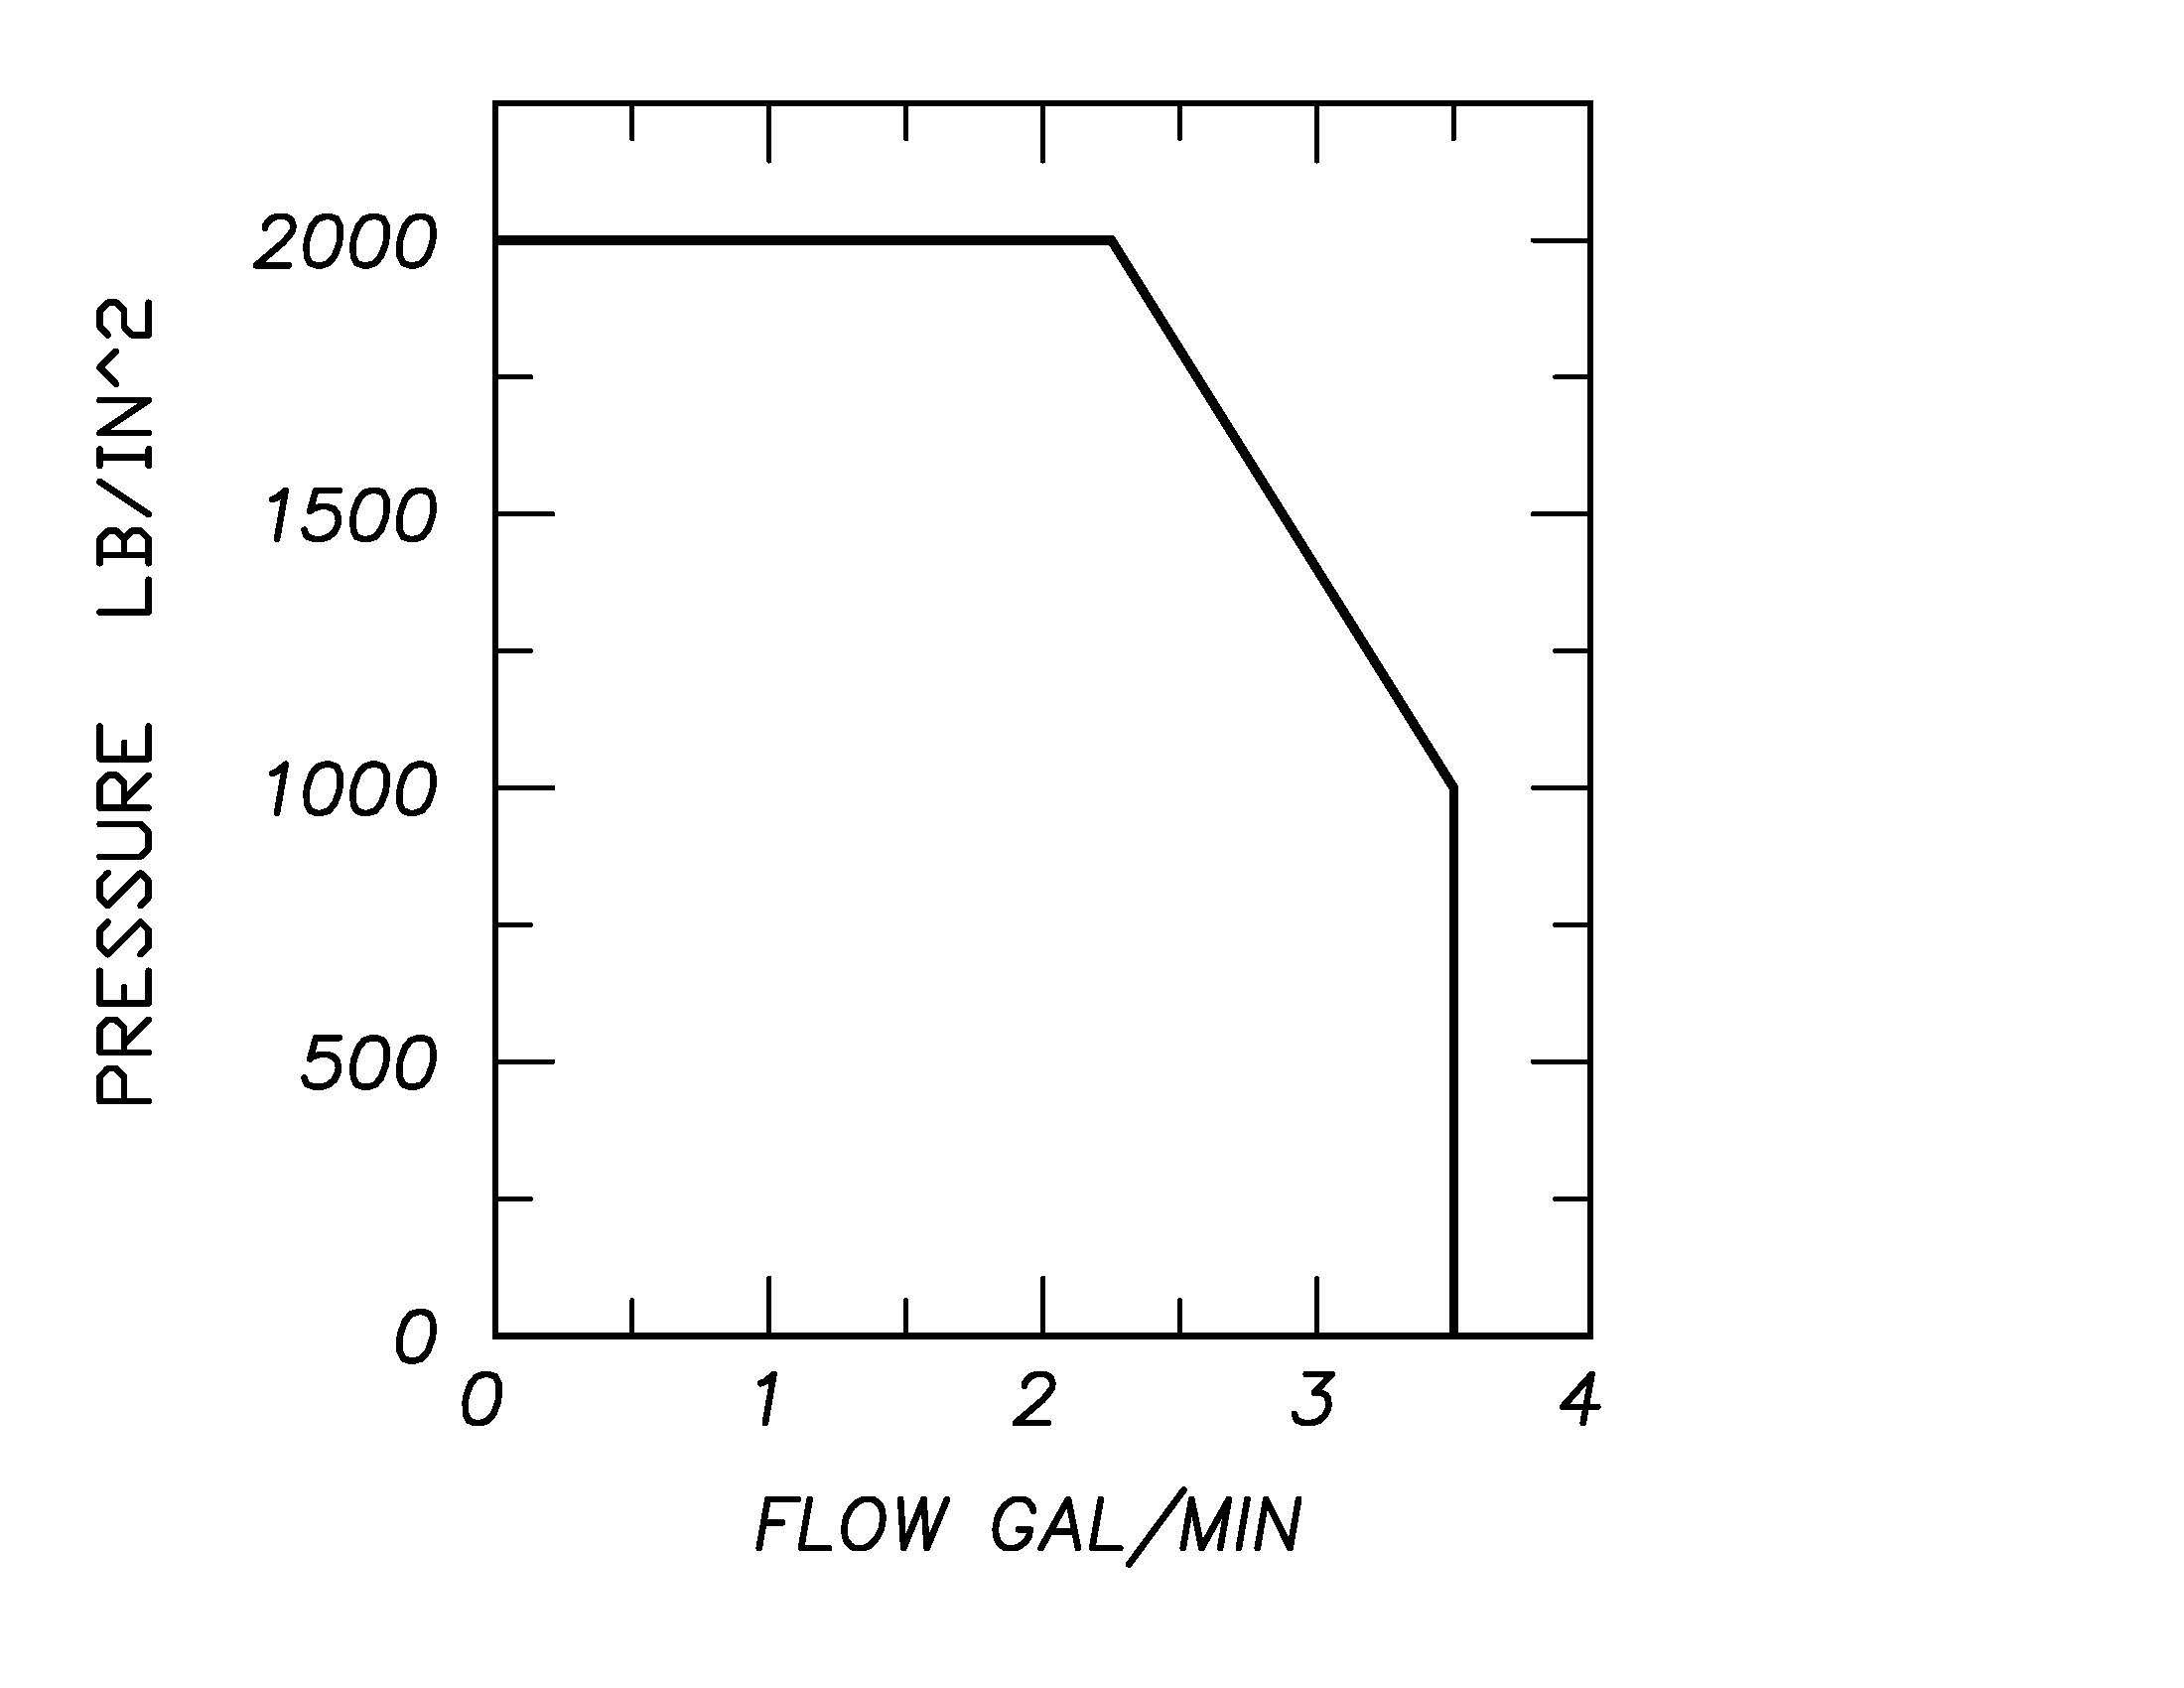 Hydraulic pump flow and pressure characteristics